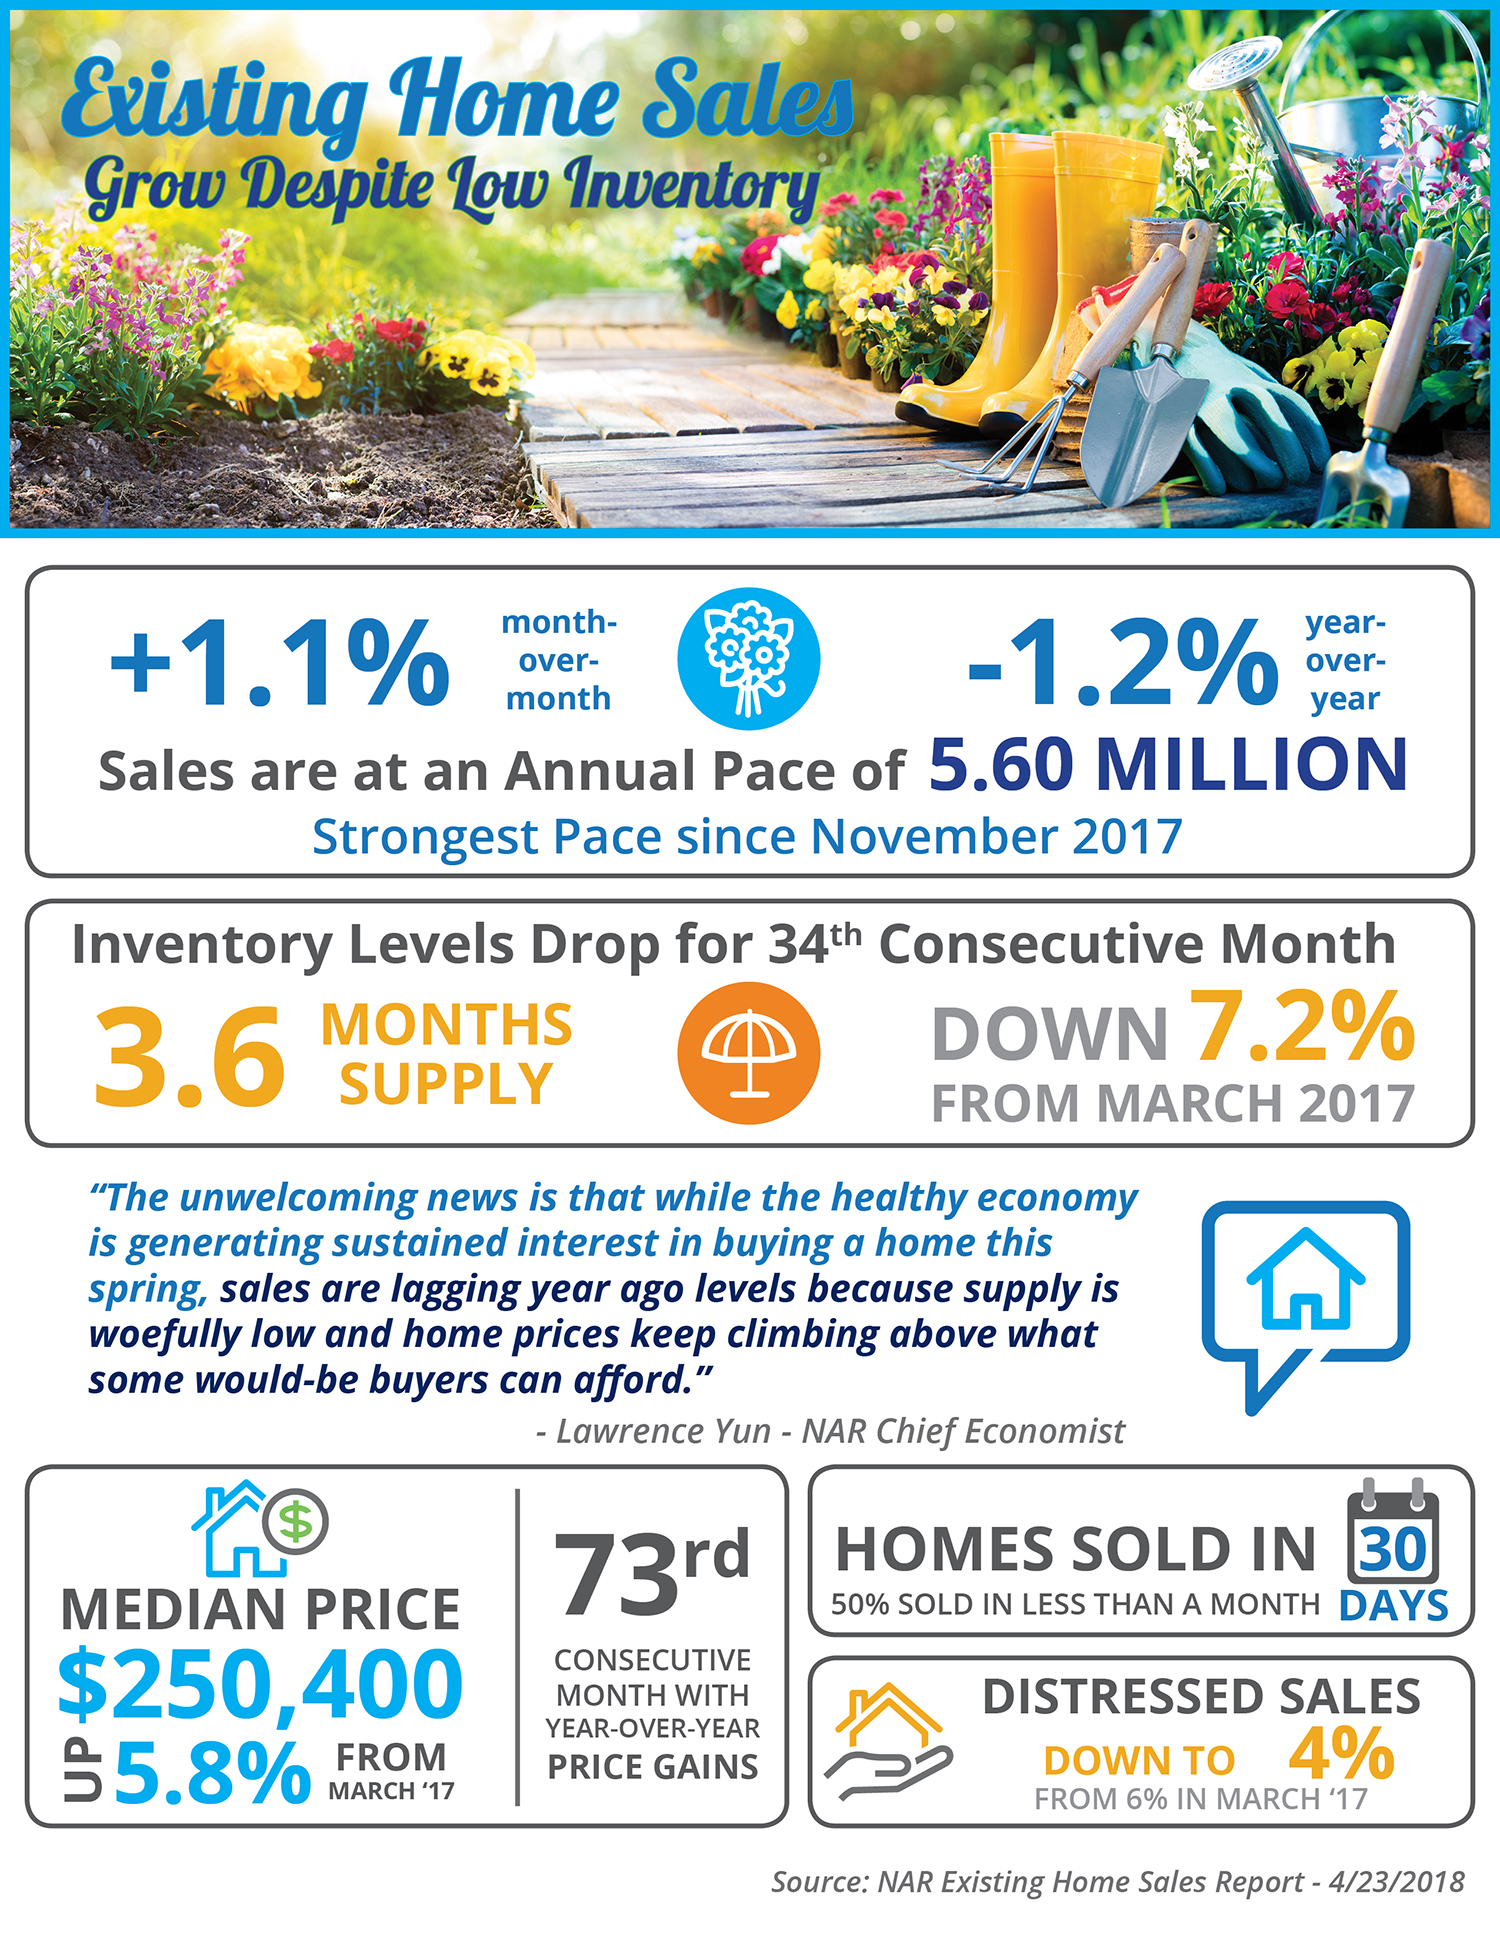 Existing Home Sales Grow Despite Low Inventory [INFOGRAPHIC] | Simplifying the Market